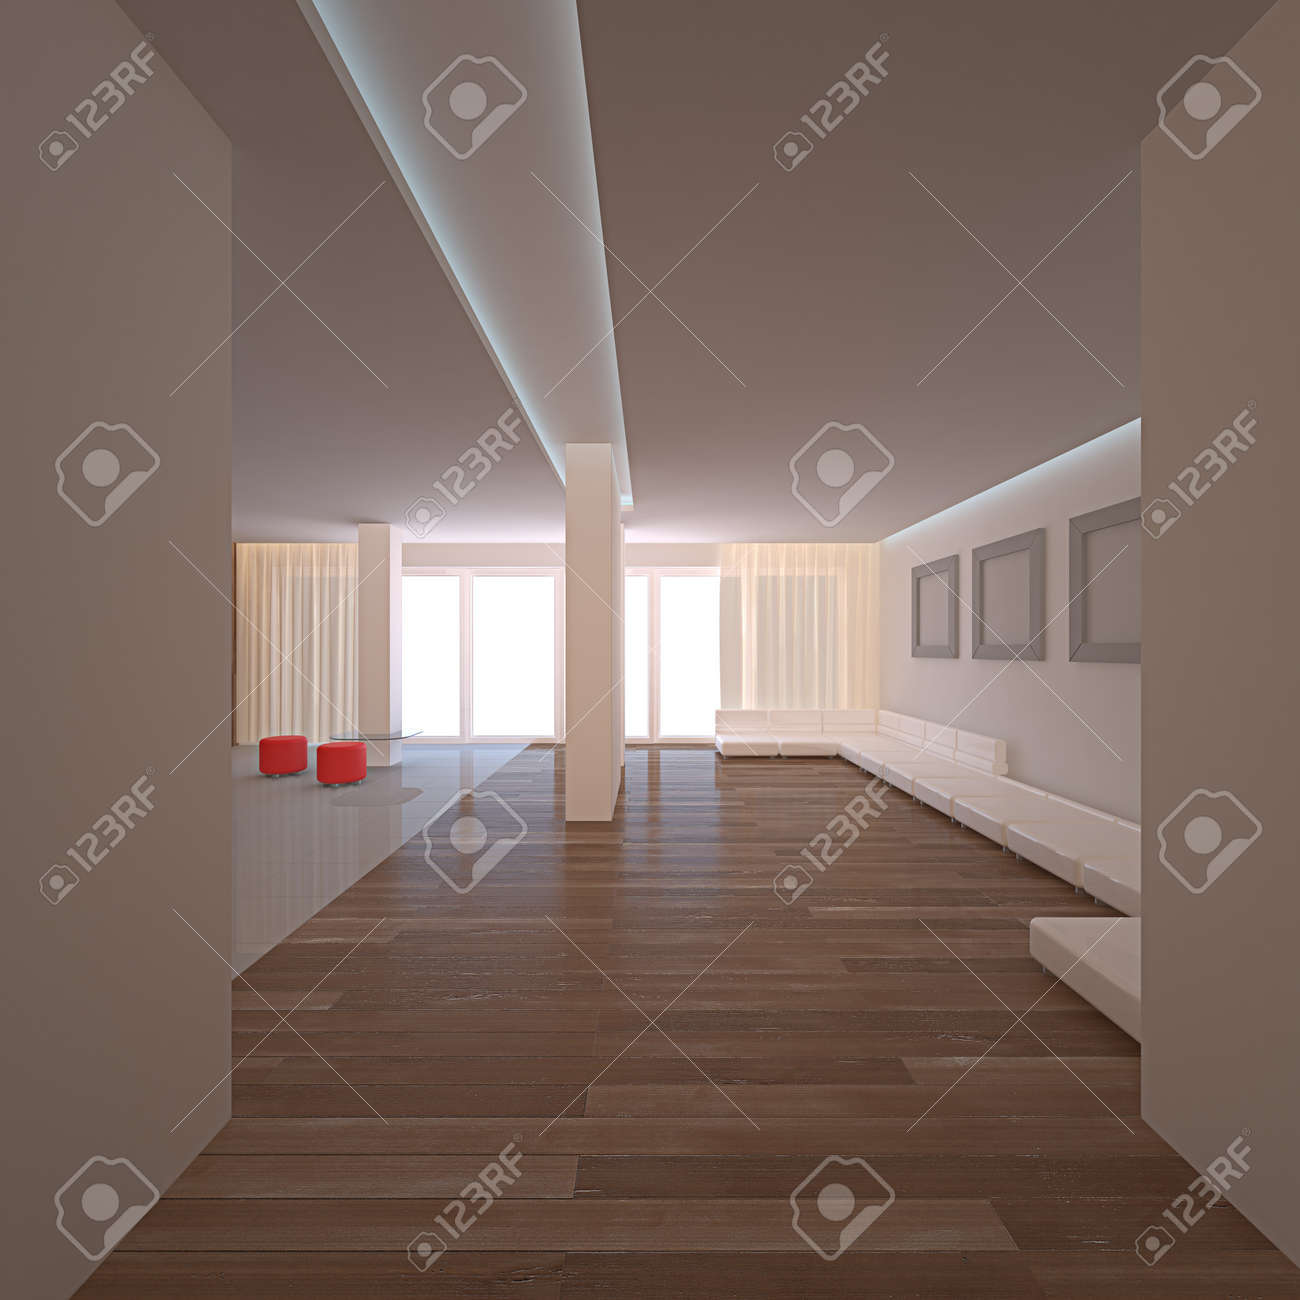 Simple room. No copyrights, my design project Stock Photo - 10318686